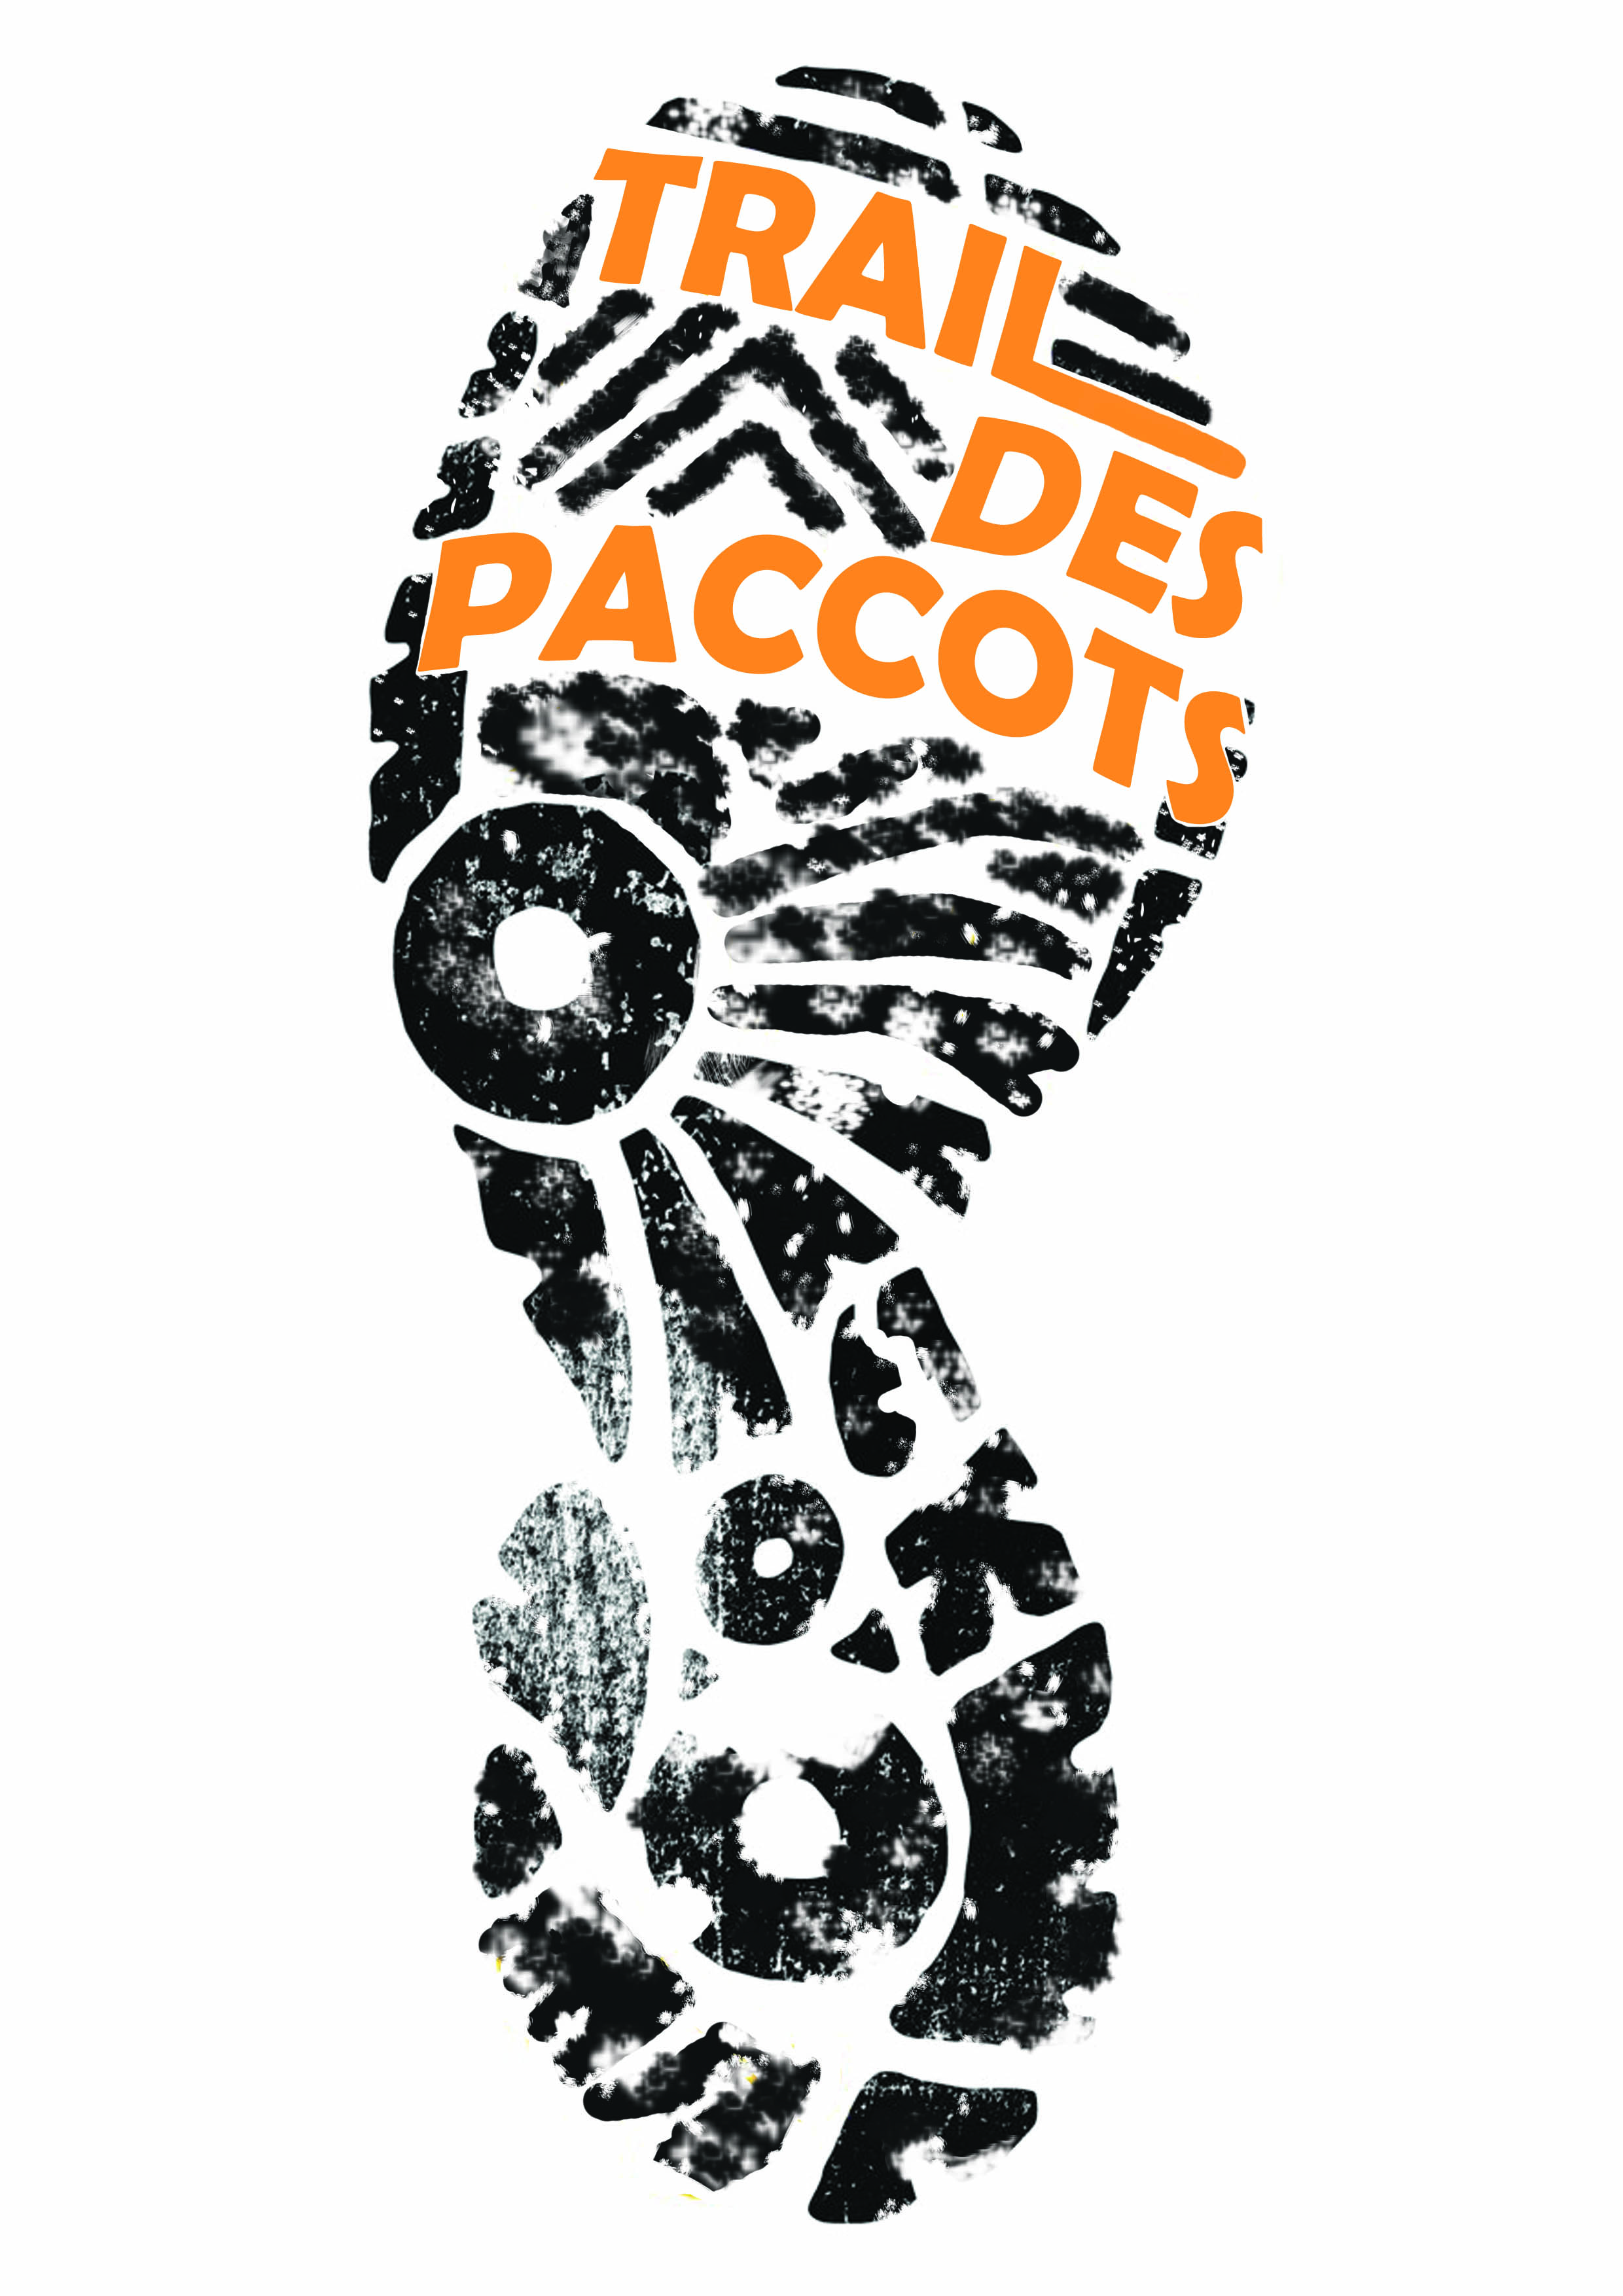 Media: Image_courses/2017/Logo-trail-paccots.jpg